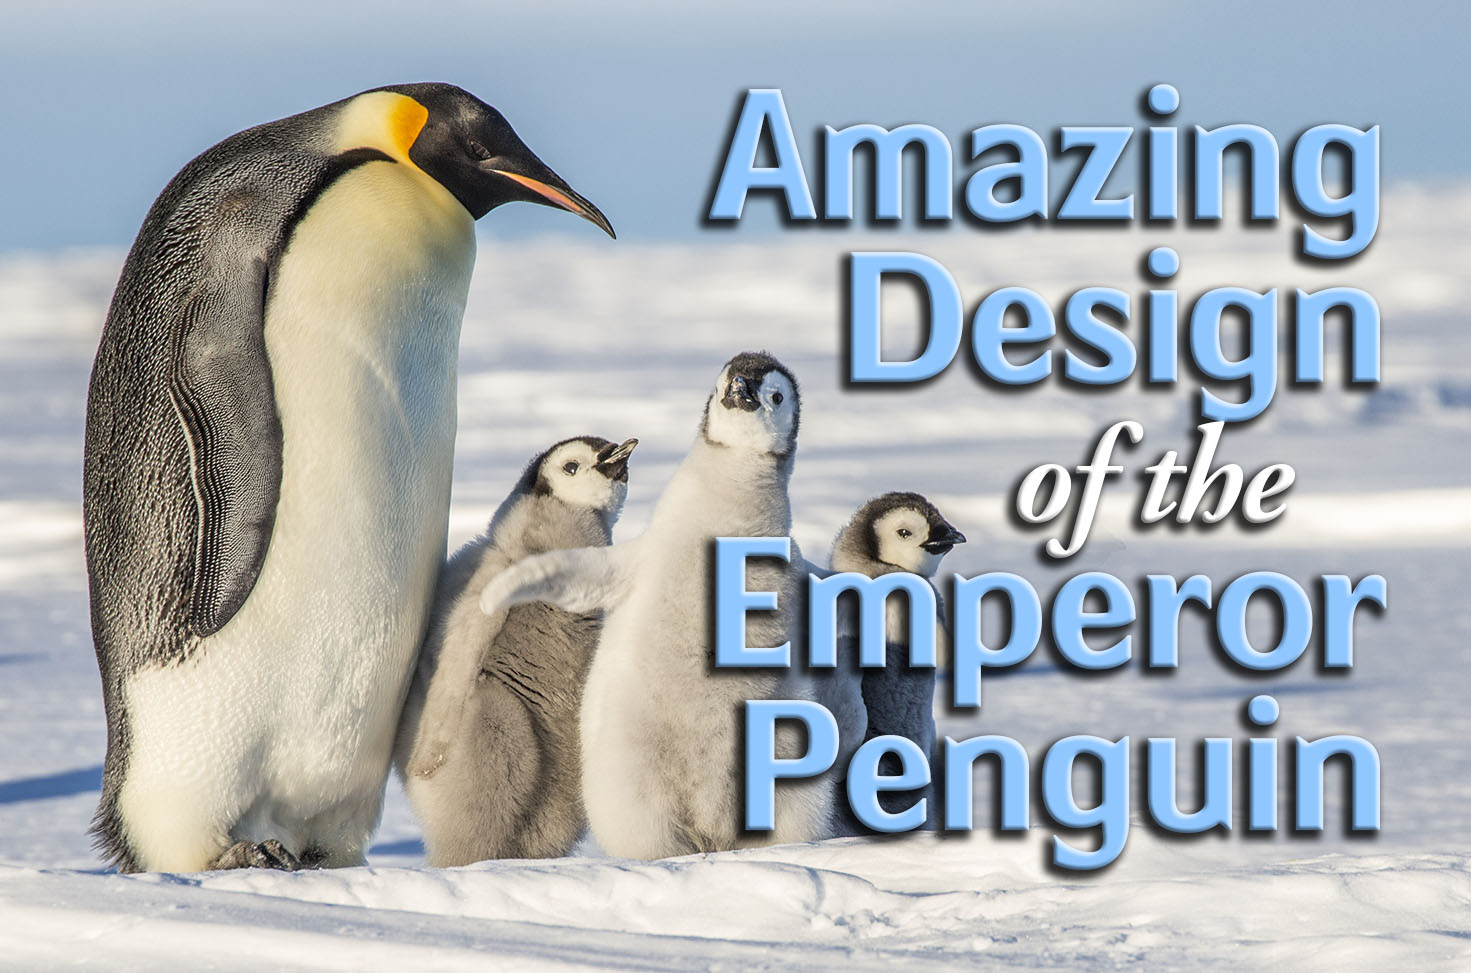 Photo of Amazing Design of the Emperor Penguin